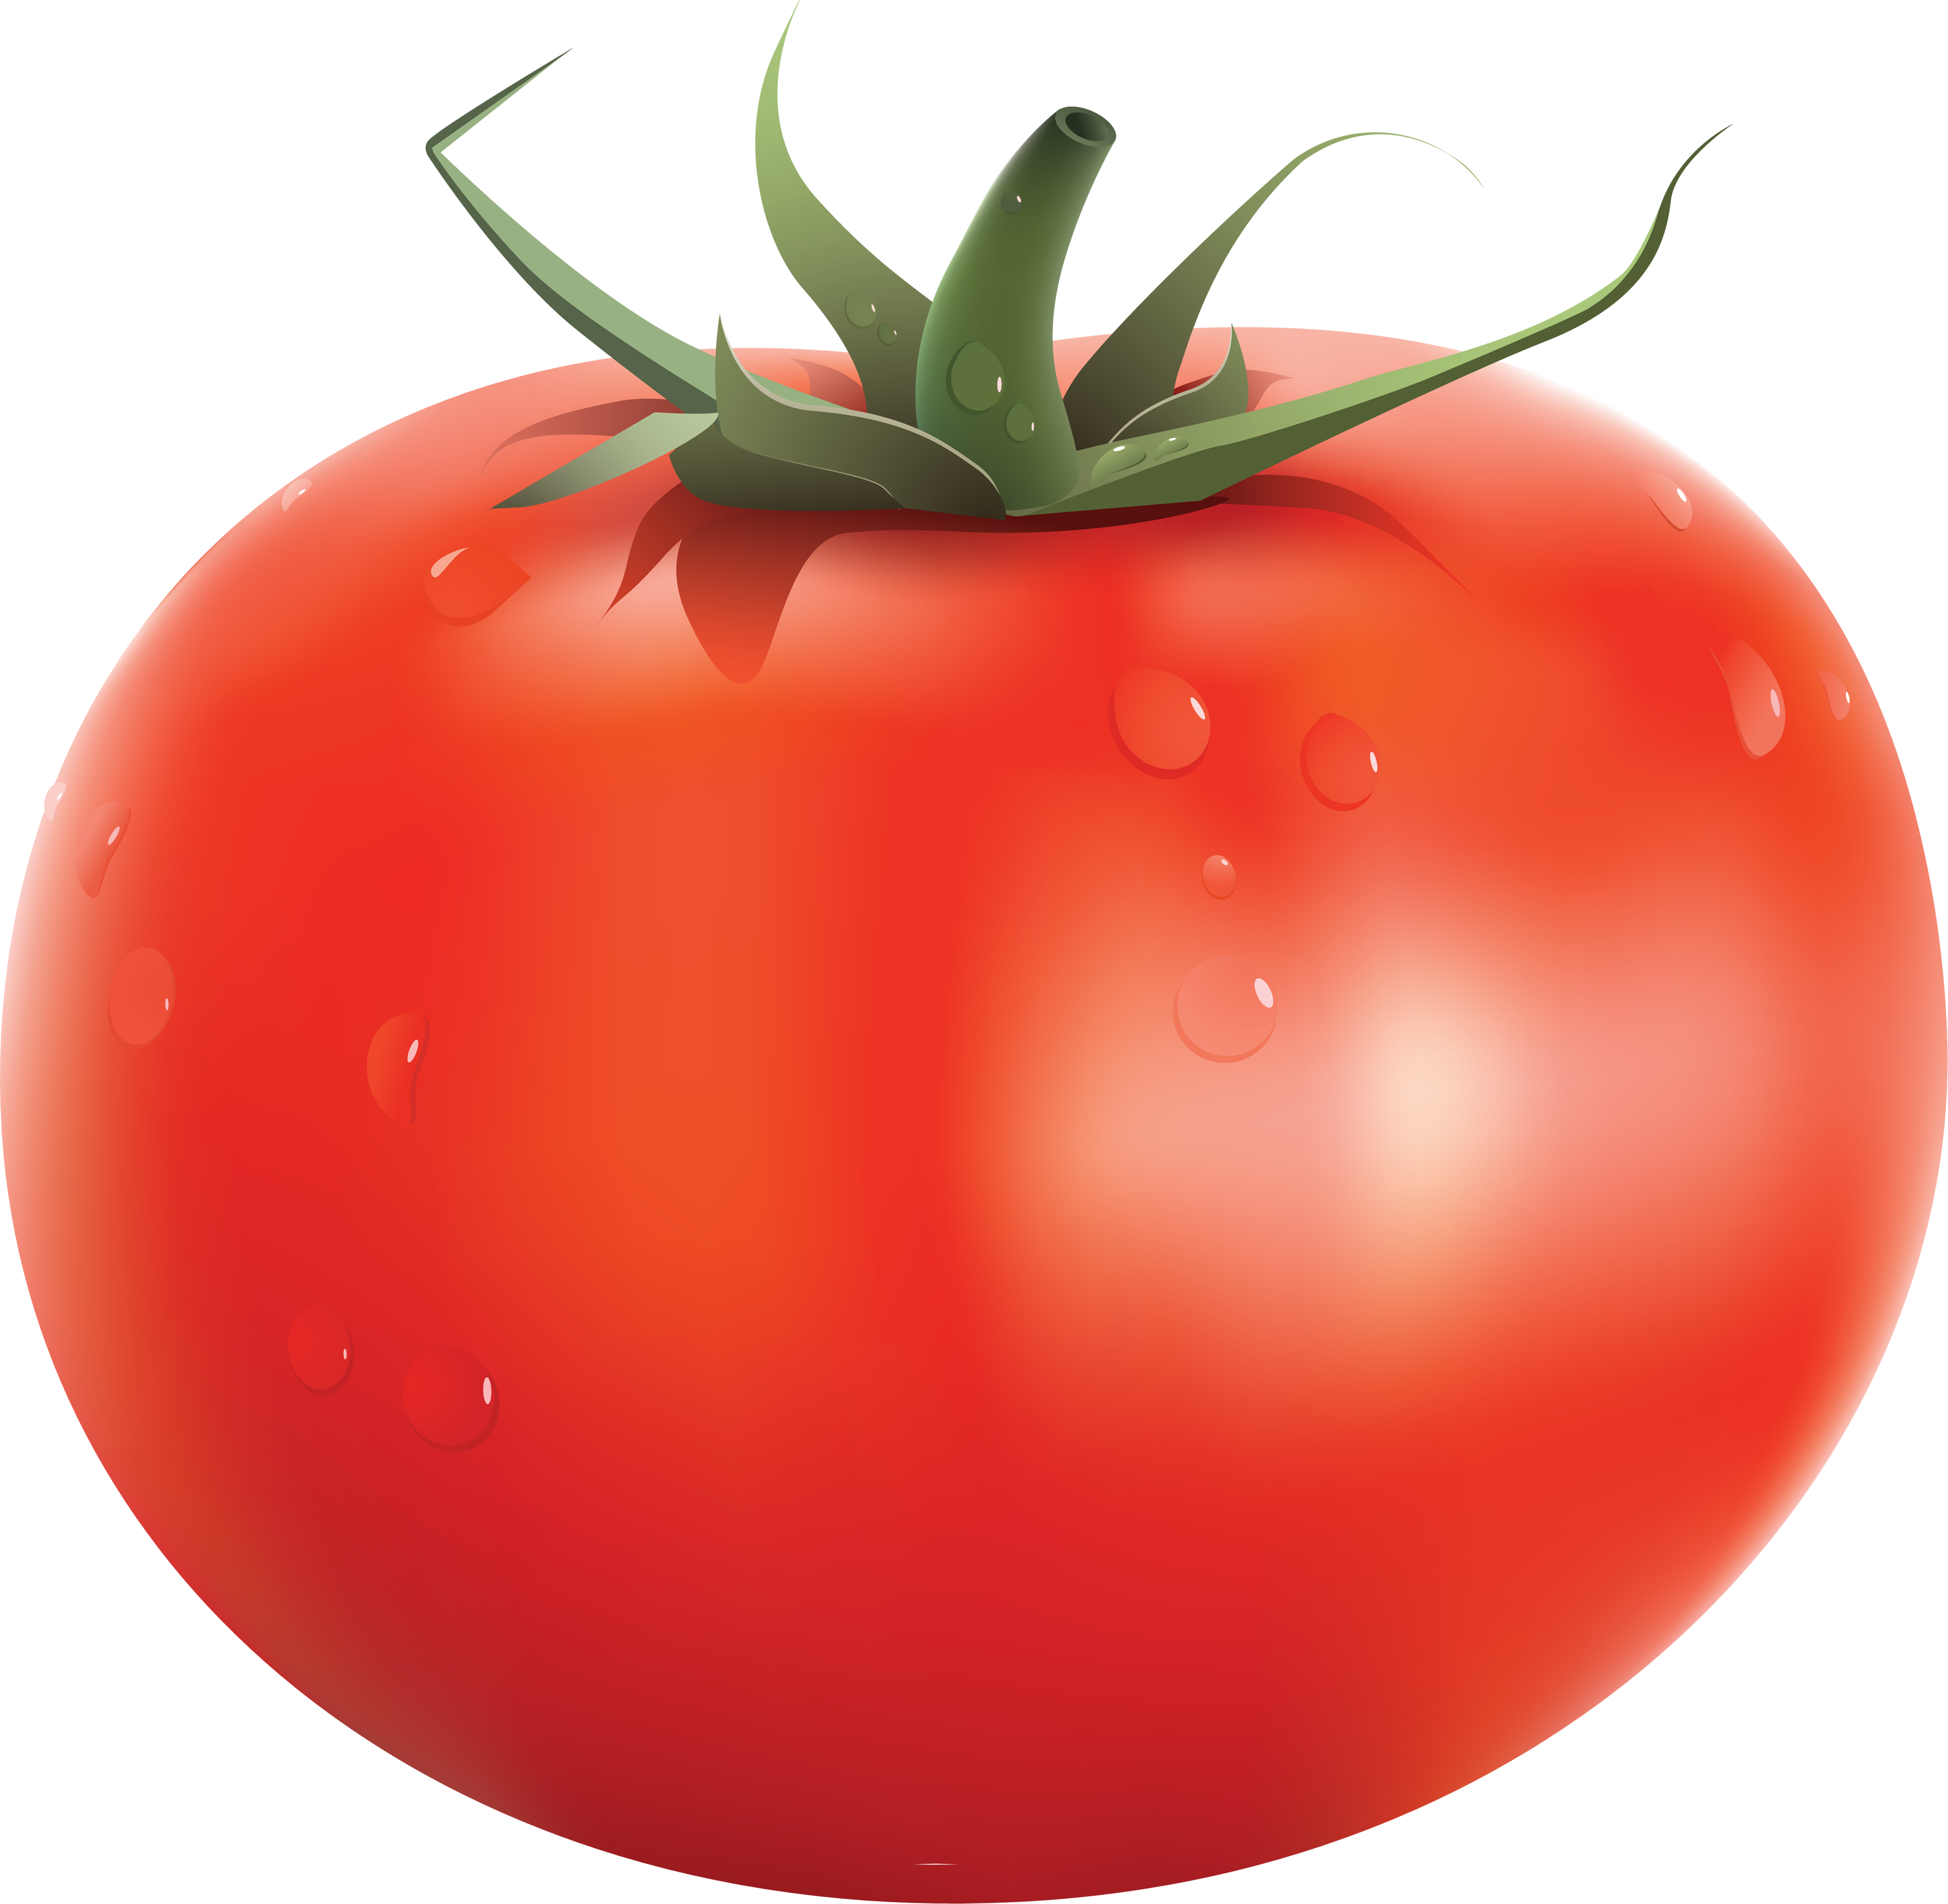 Vegetables clipart png. Only tomato hd transparent